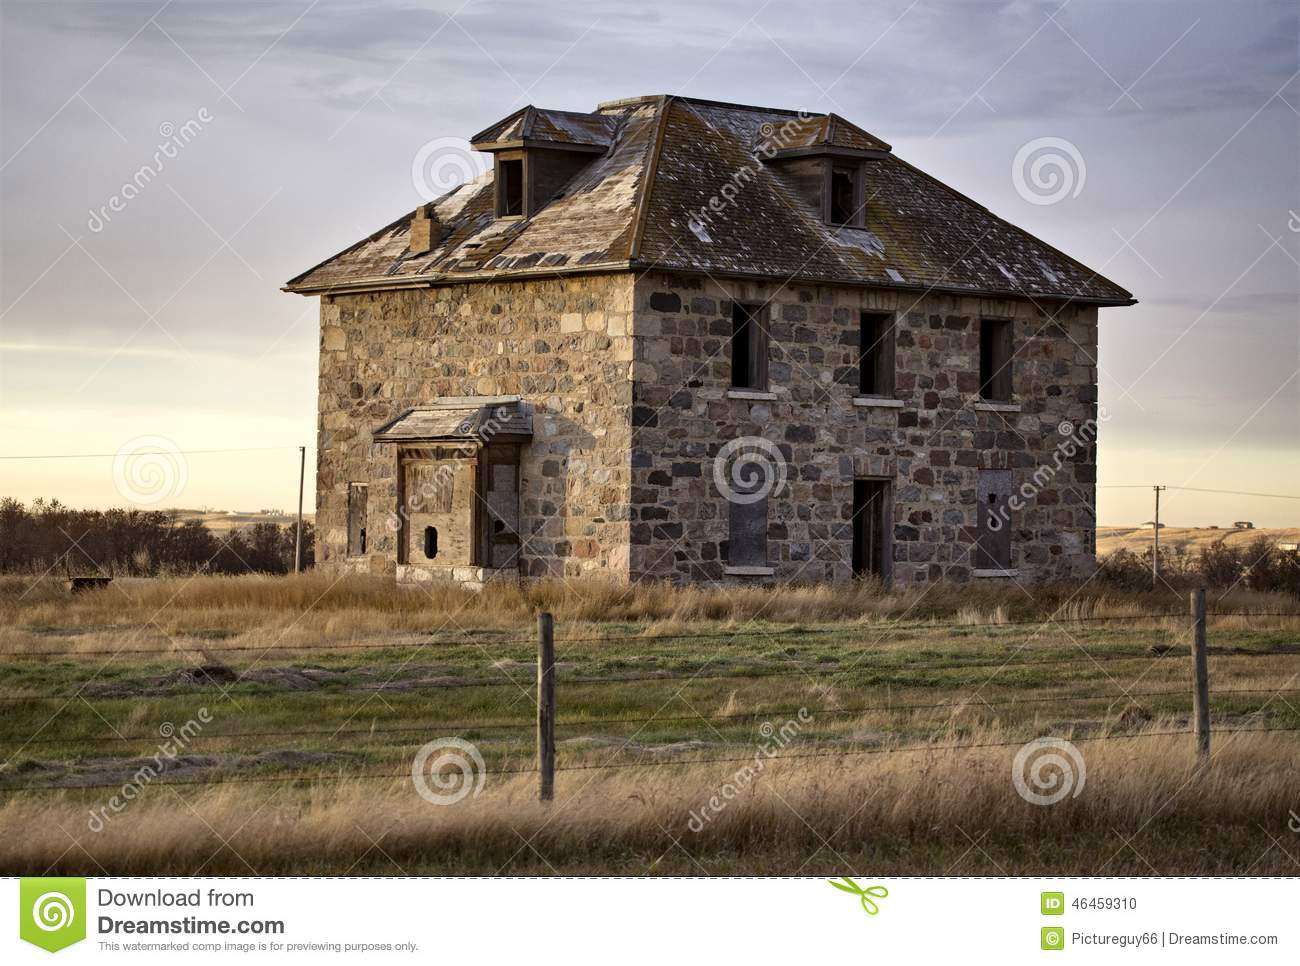 Vieille Maison En Pierre Of Vieille Maison En Pierre Abandonn E Photo Stock Image